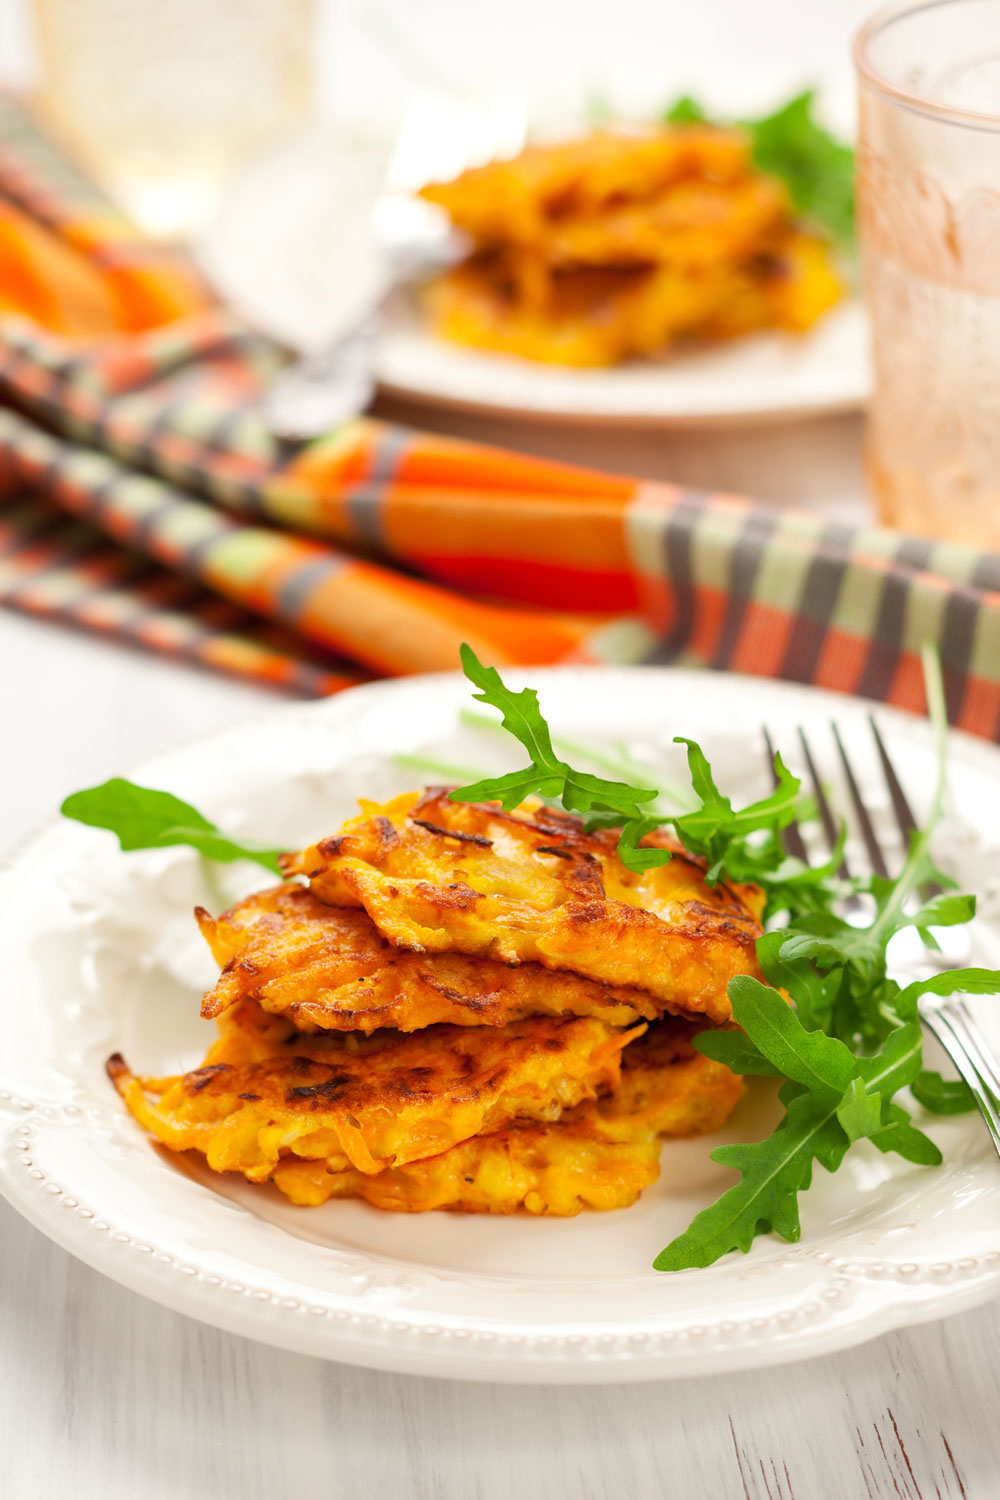 Online Personal Trainer Breakfast Recipes - Carrot Pancakes.jpg